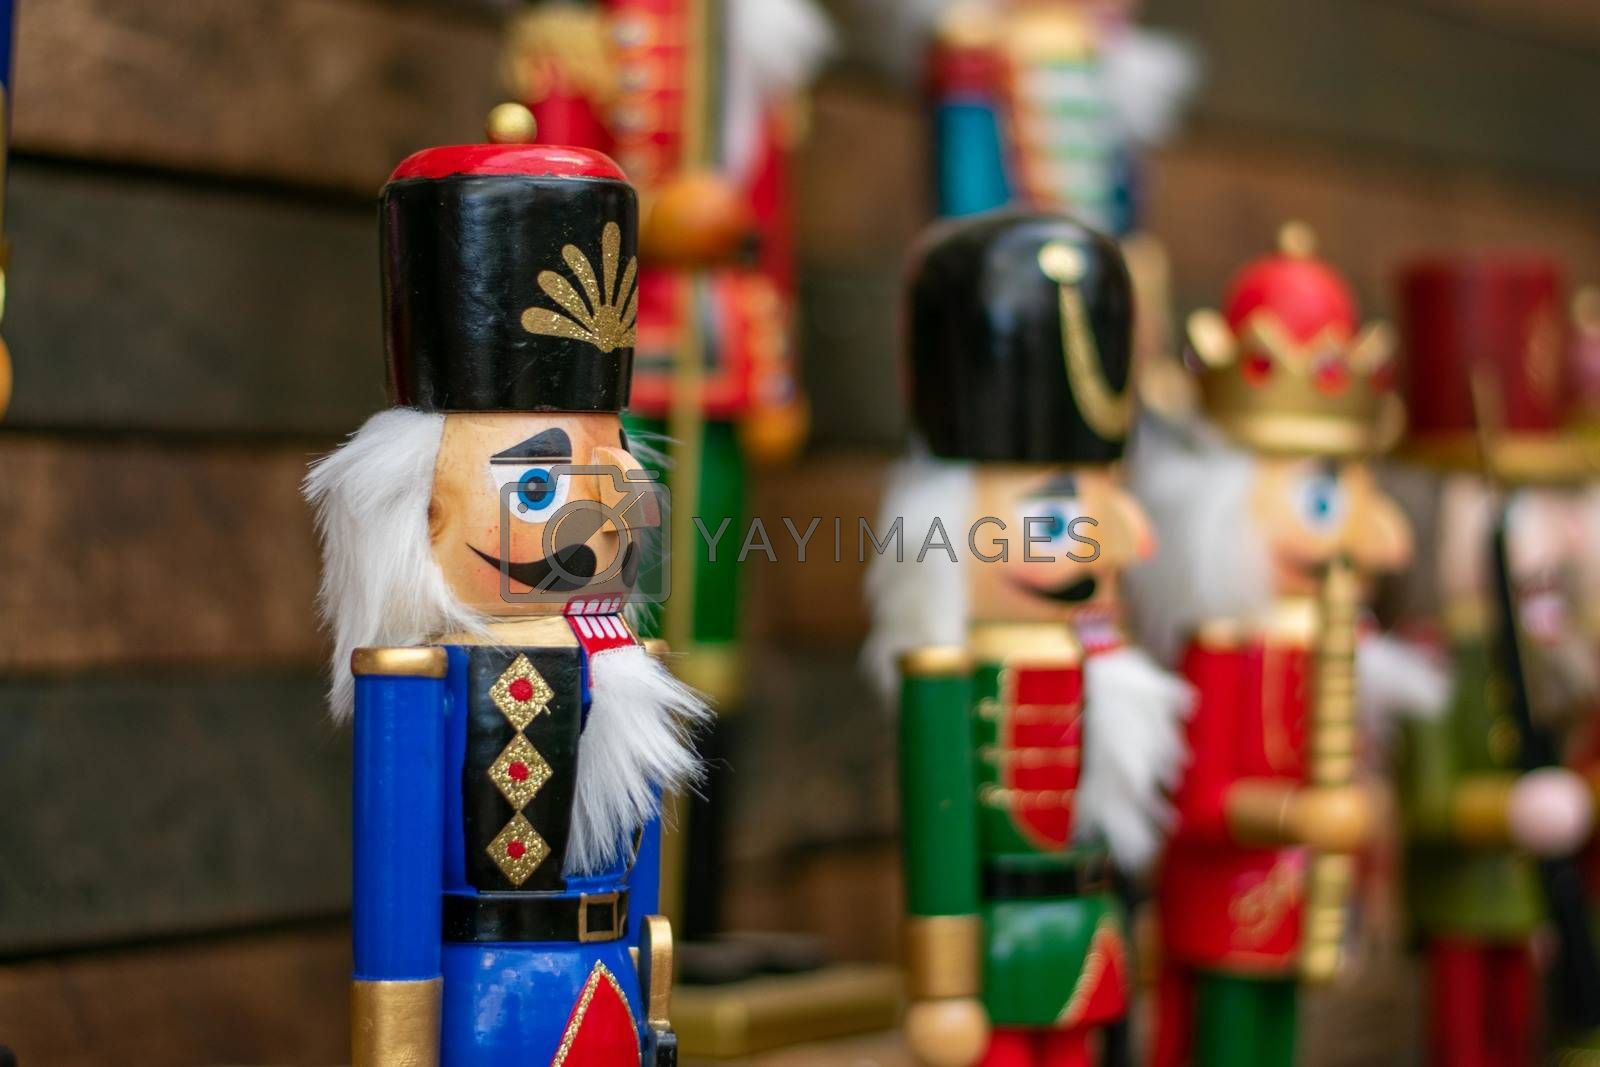 A Blue Nutcracker on a Dark Wooden Shelf With Other Nutcrackers In Line Next to It